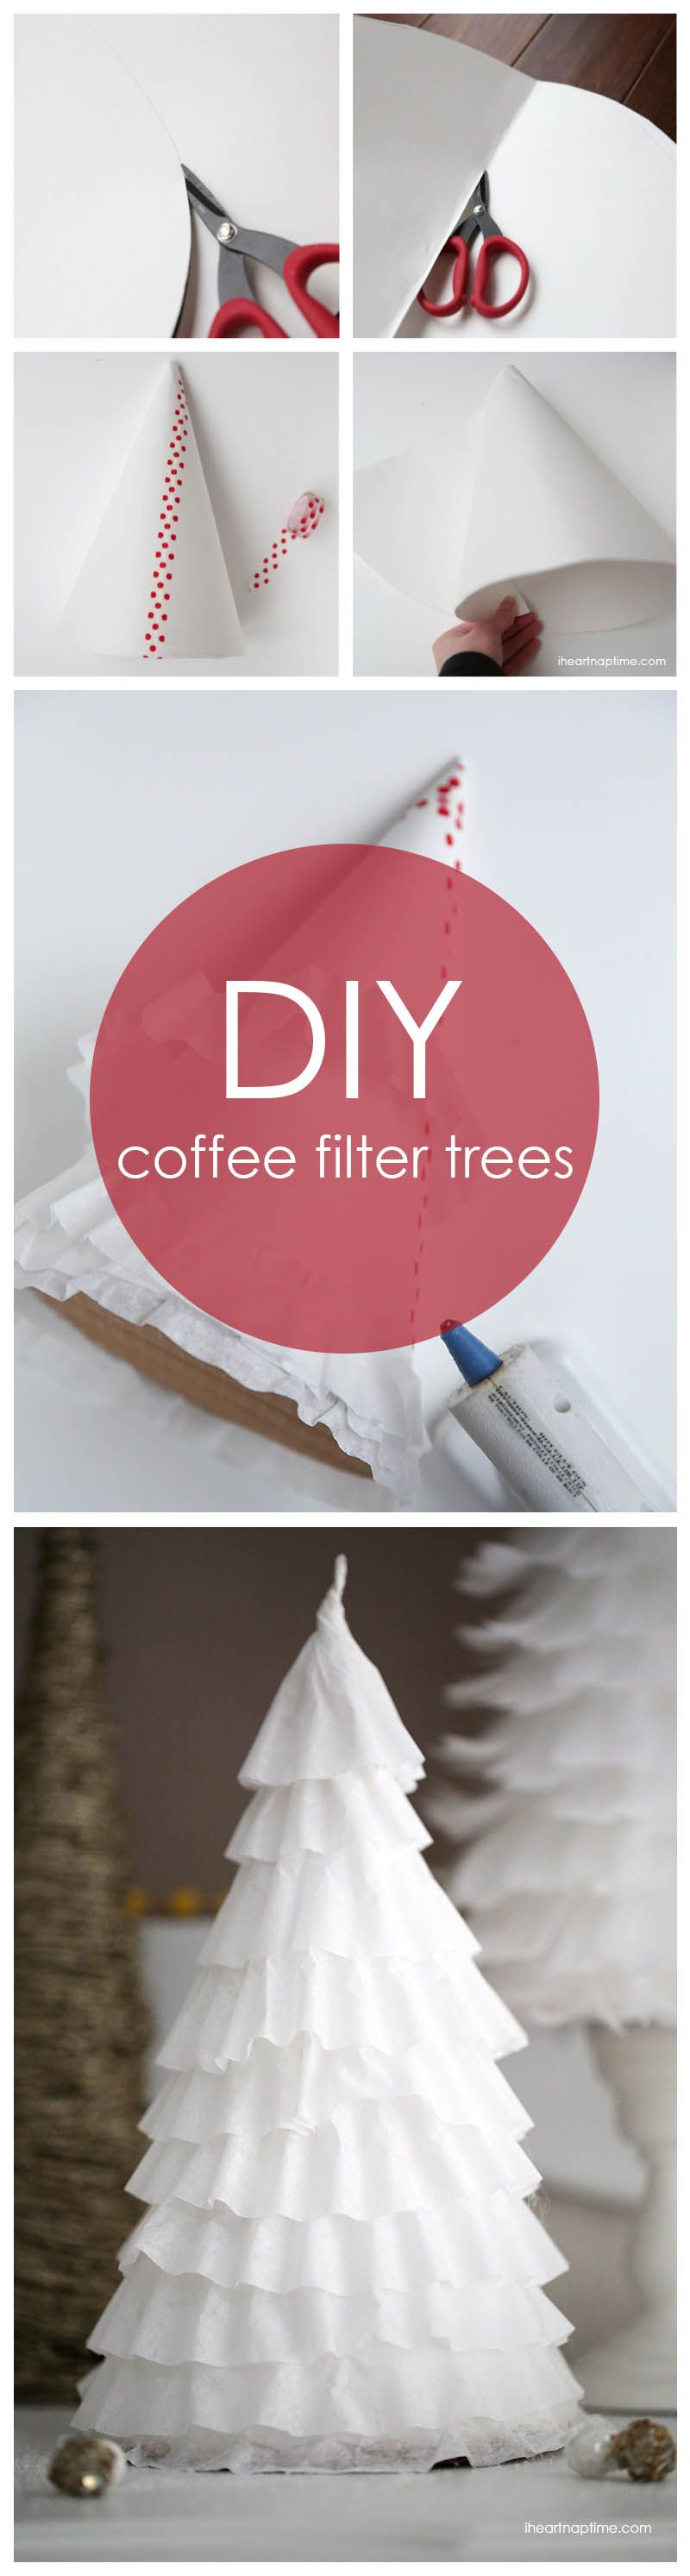 DIY 1 coffee filter trees Christmas diy, Christmas